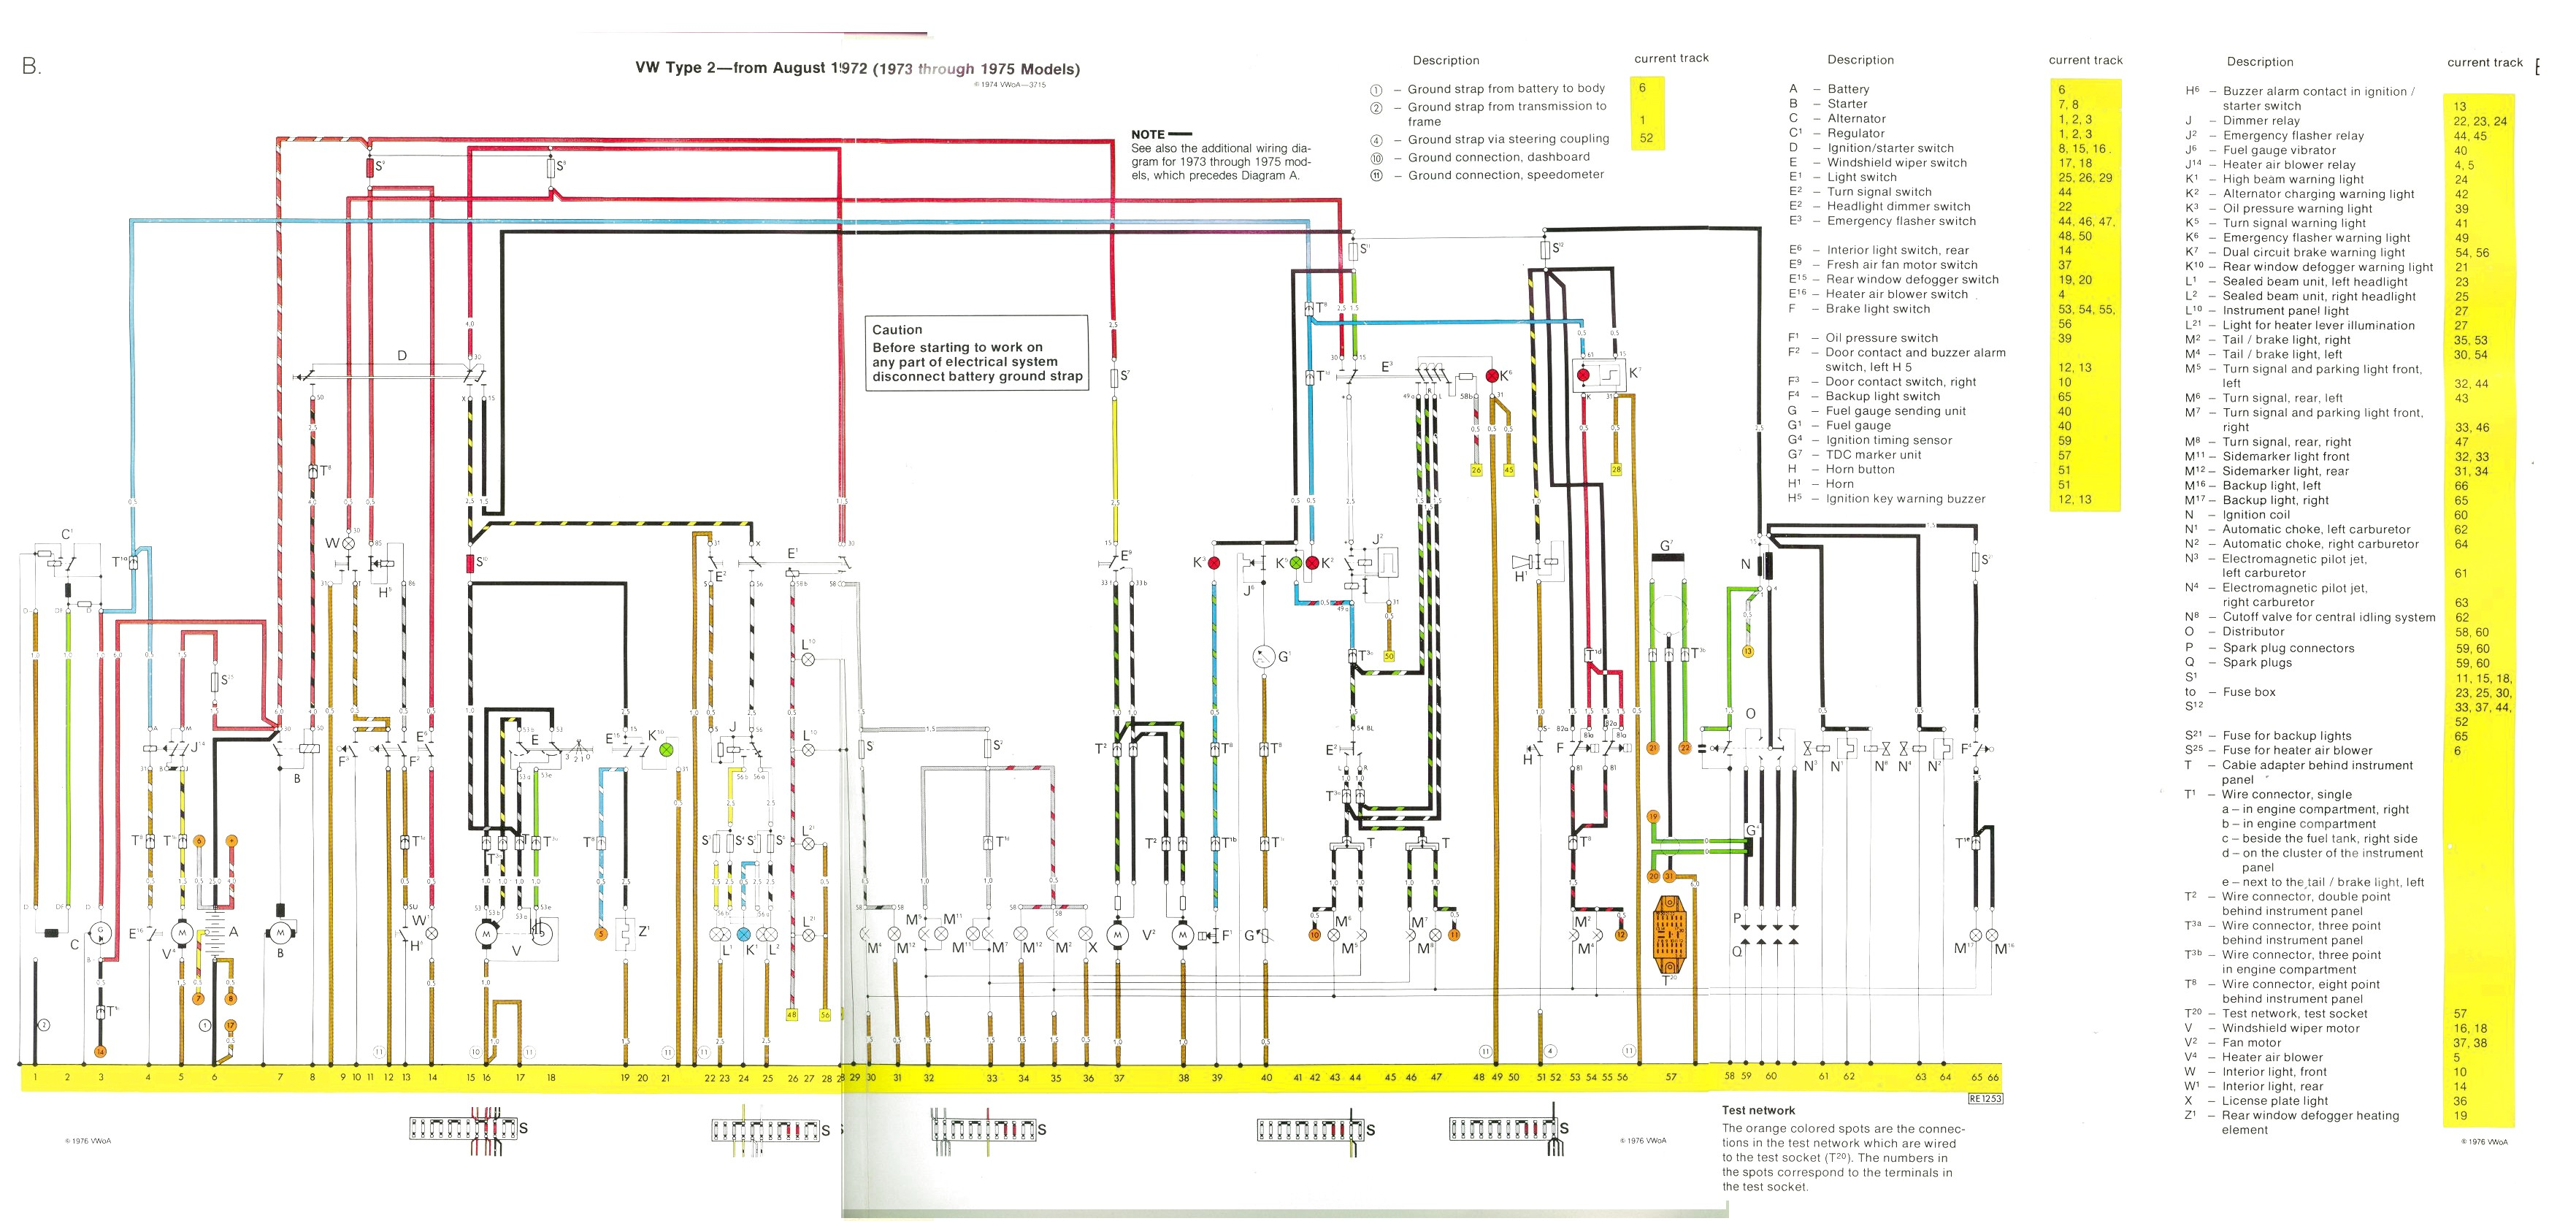 bus 73 75 vintagebus com vw bus (and other) wiring diagrams 1973 vw wiring diagram at nearapp.co